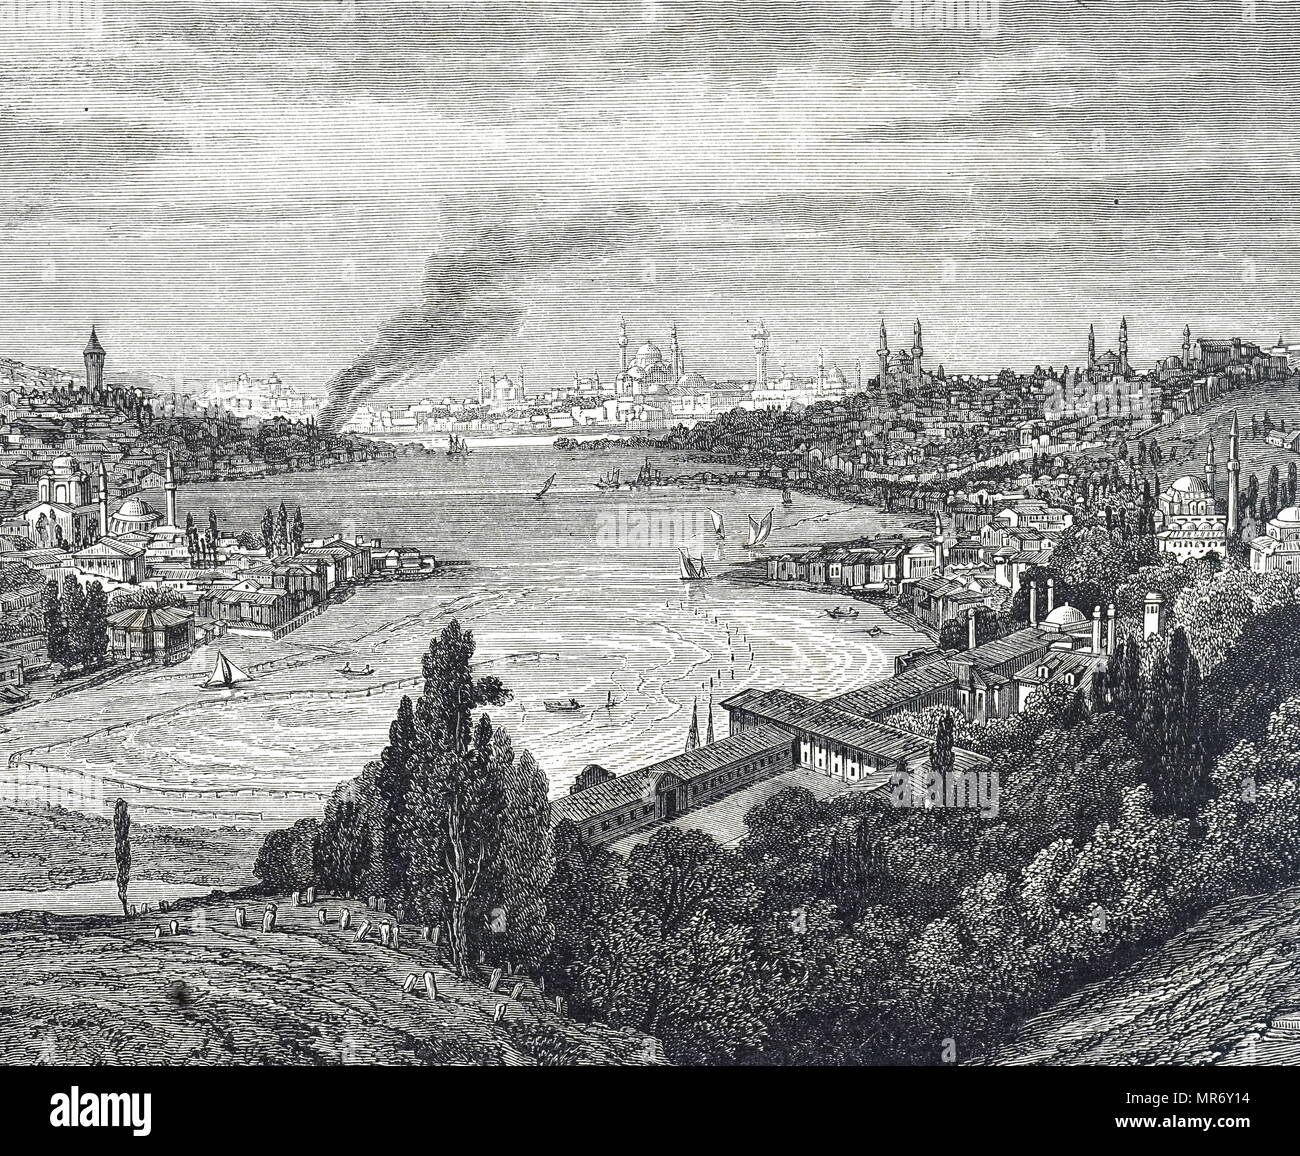 Engraving depicting a view of Constantinople, the old capital city of the Roman/Byzantine, and the later Ottoman Empires. Dated 19th century - Stock Image